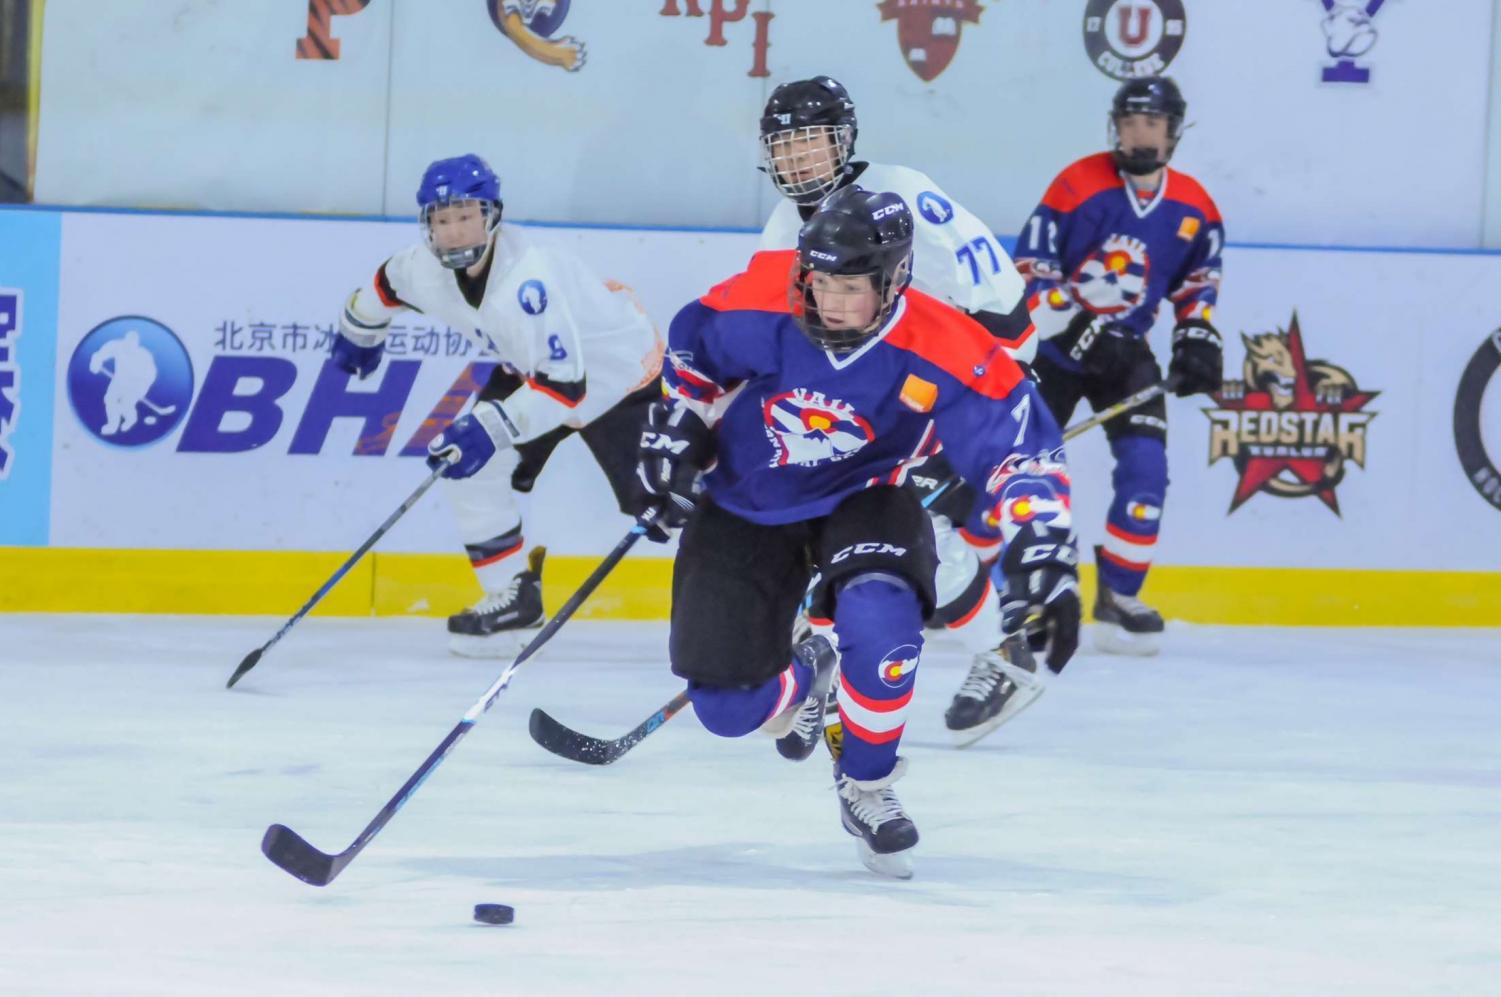 Tyler Perpar carries the puck down the ice during a competitive hockey match.  Perpar was invited to play with other athletes from a collection of mountain towns in China last year.